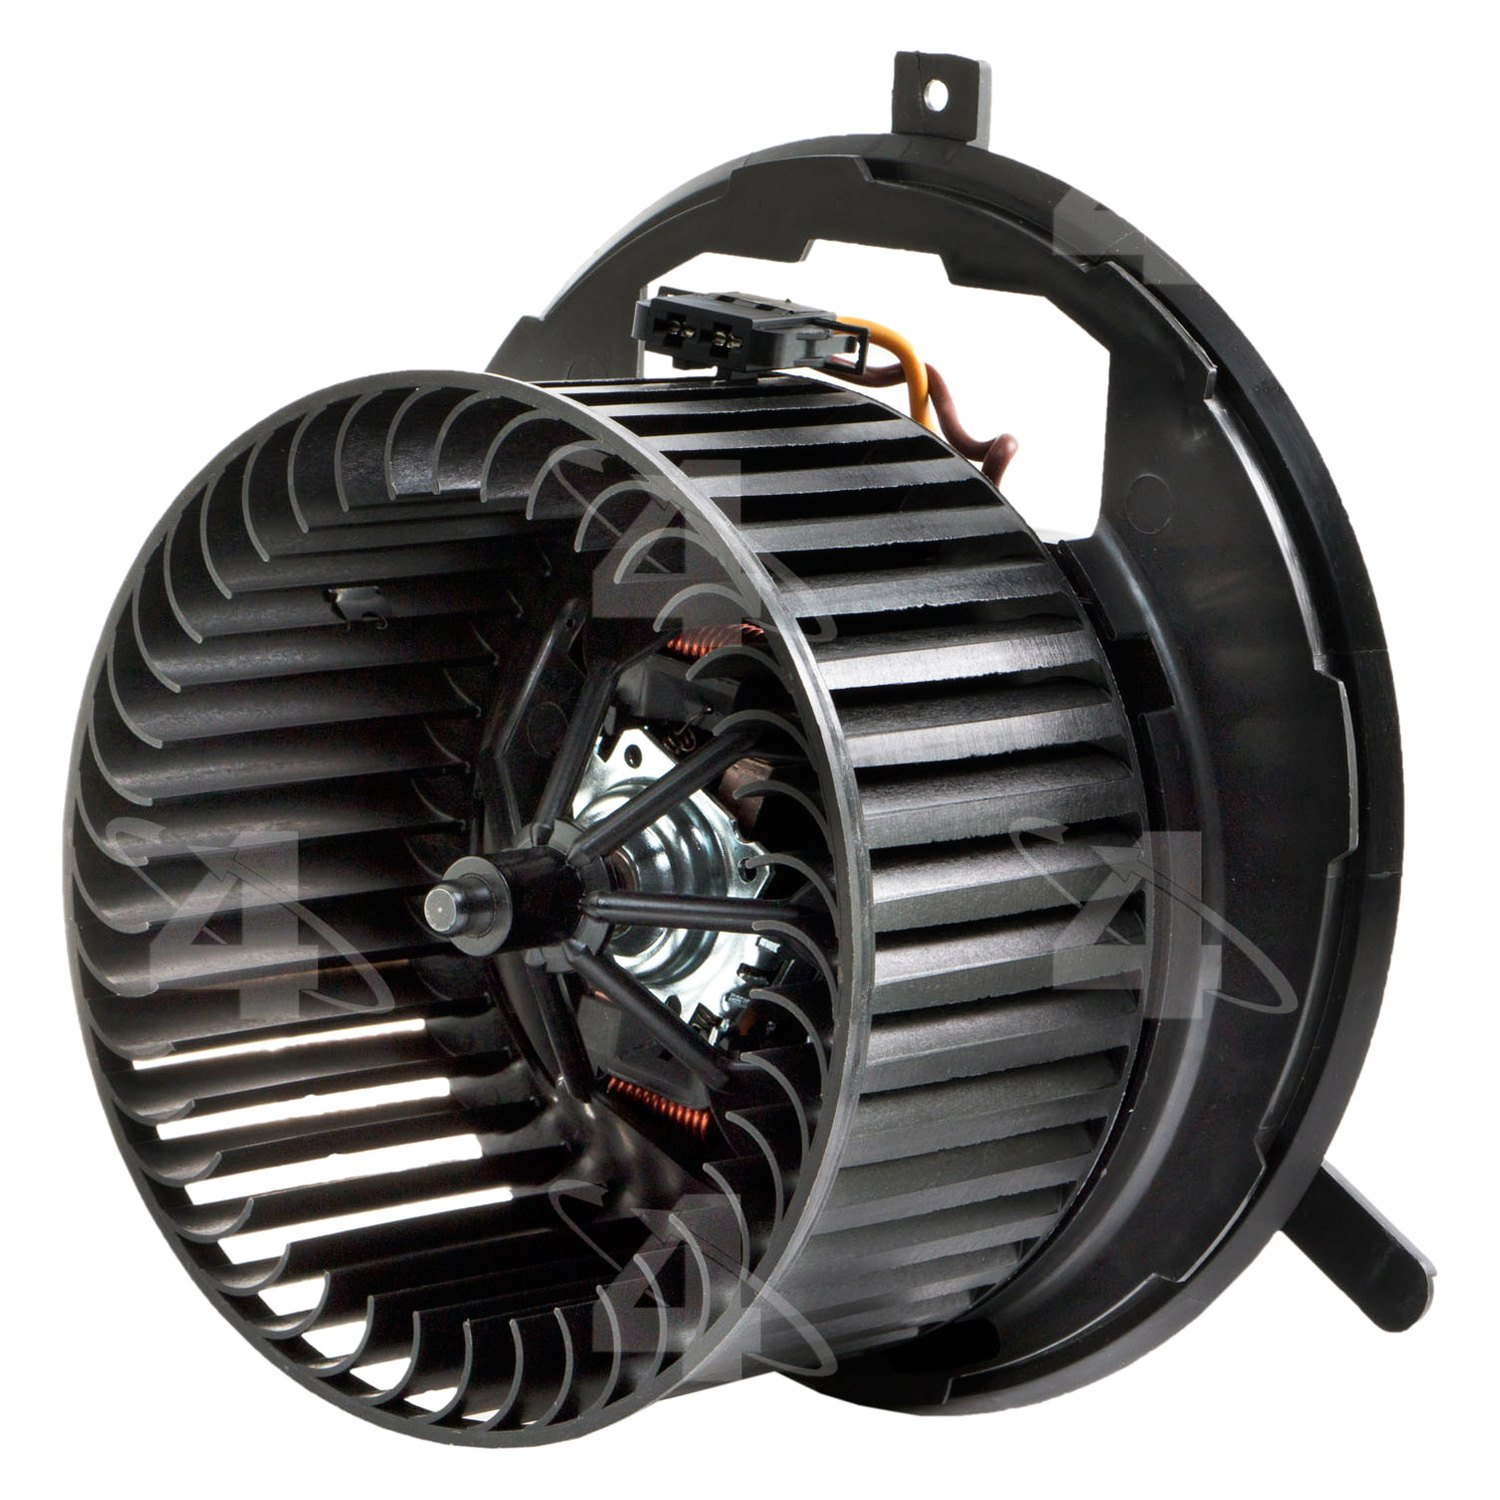 Oscillating Tower Fan Motor Wiring Diagram Parts Auto